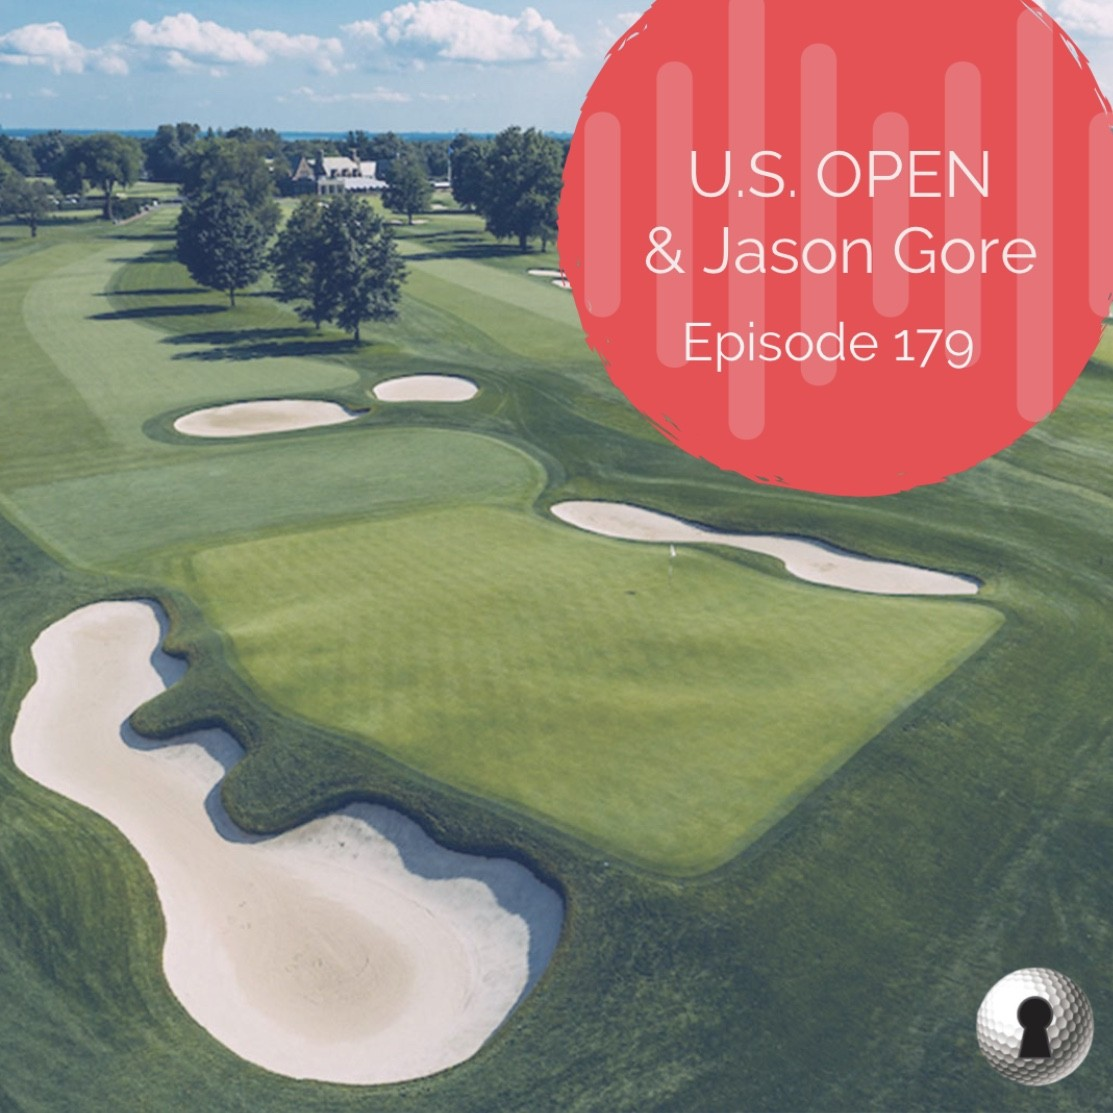 U.S. Open at Winged Foot